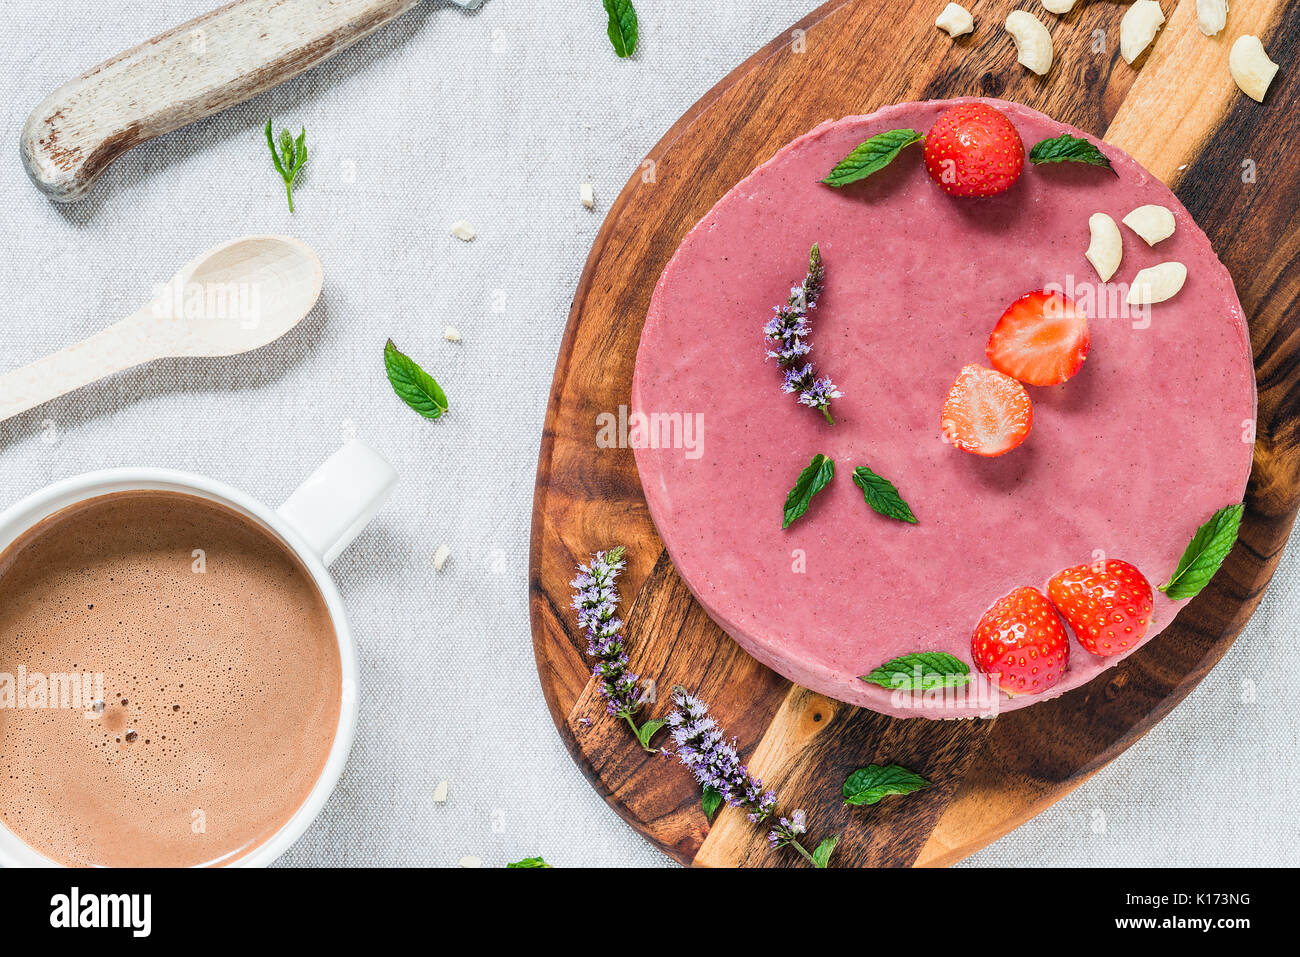 Raw healthy cheesecake, homemade with mint and strawberries. Breakfast table with hot drink. Top view - Stock Image